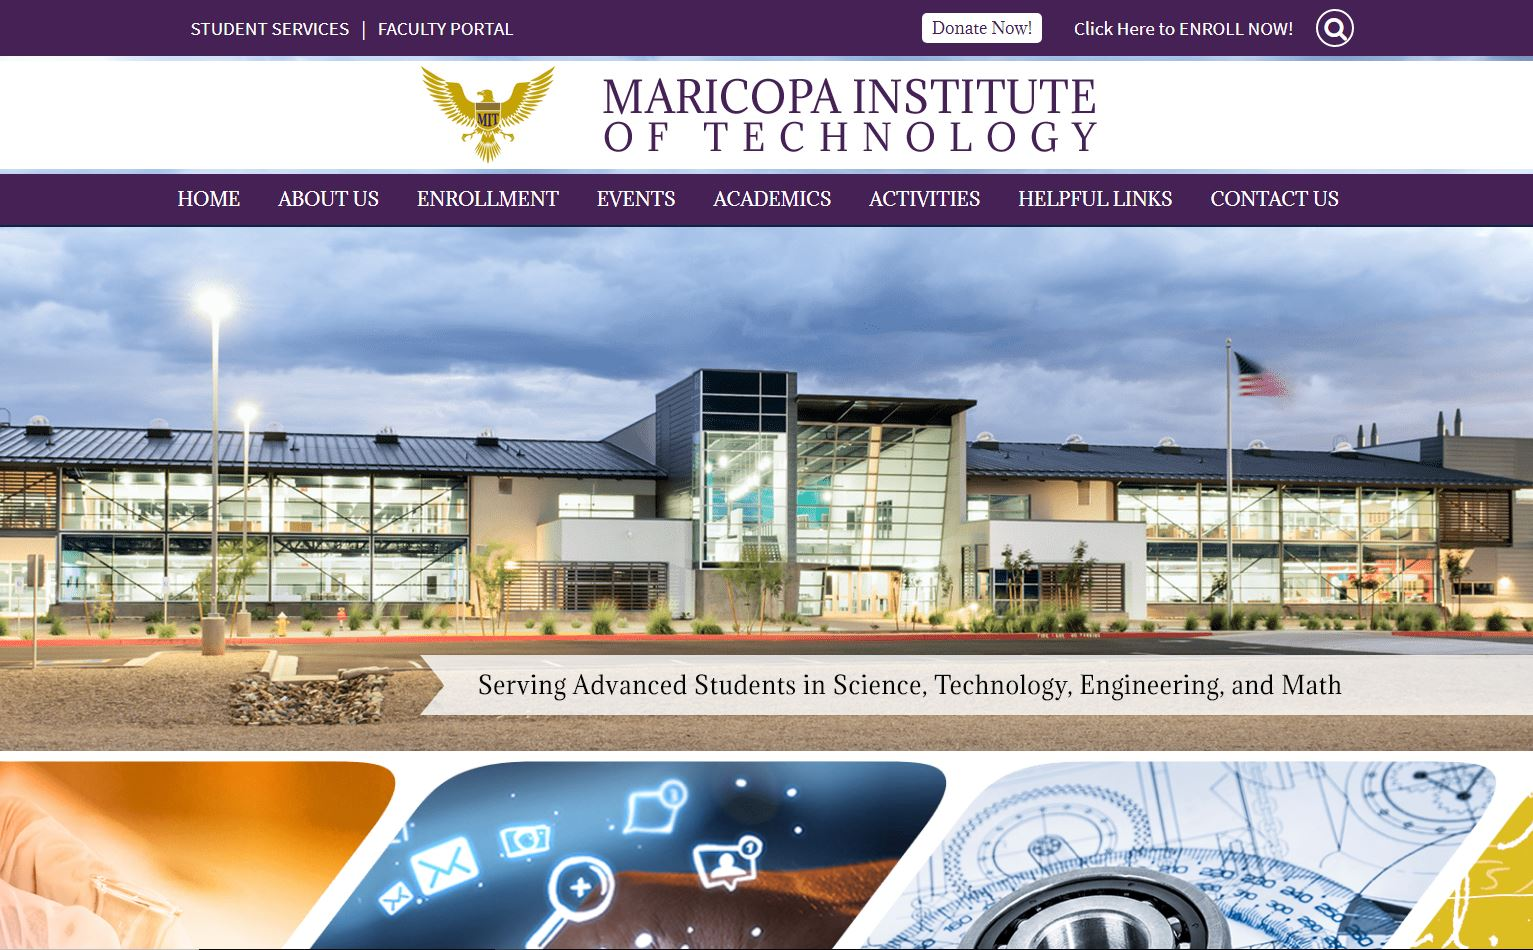 Maricopa Institute of Technology